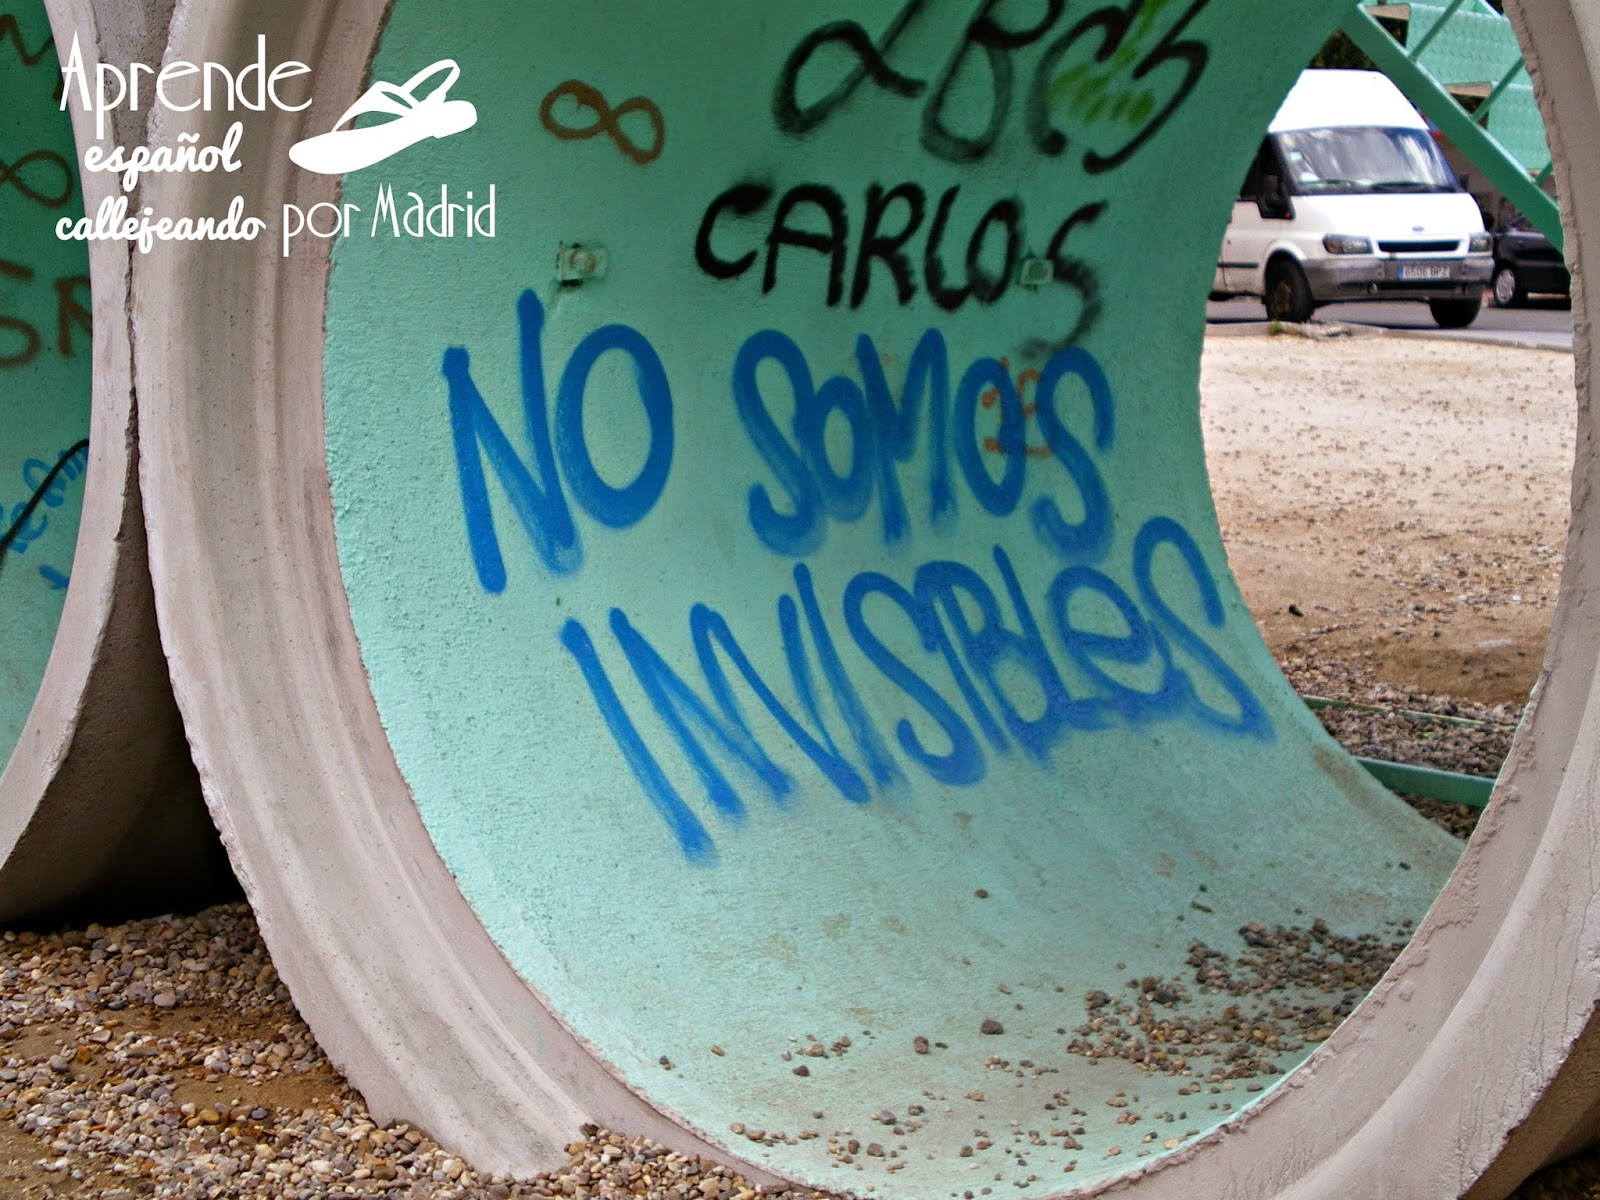 no somos invisibles